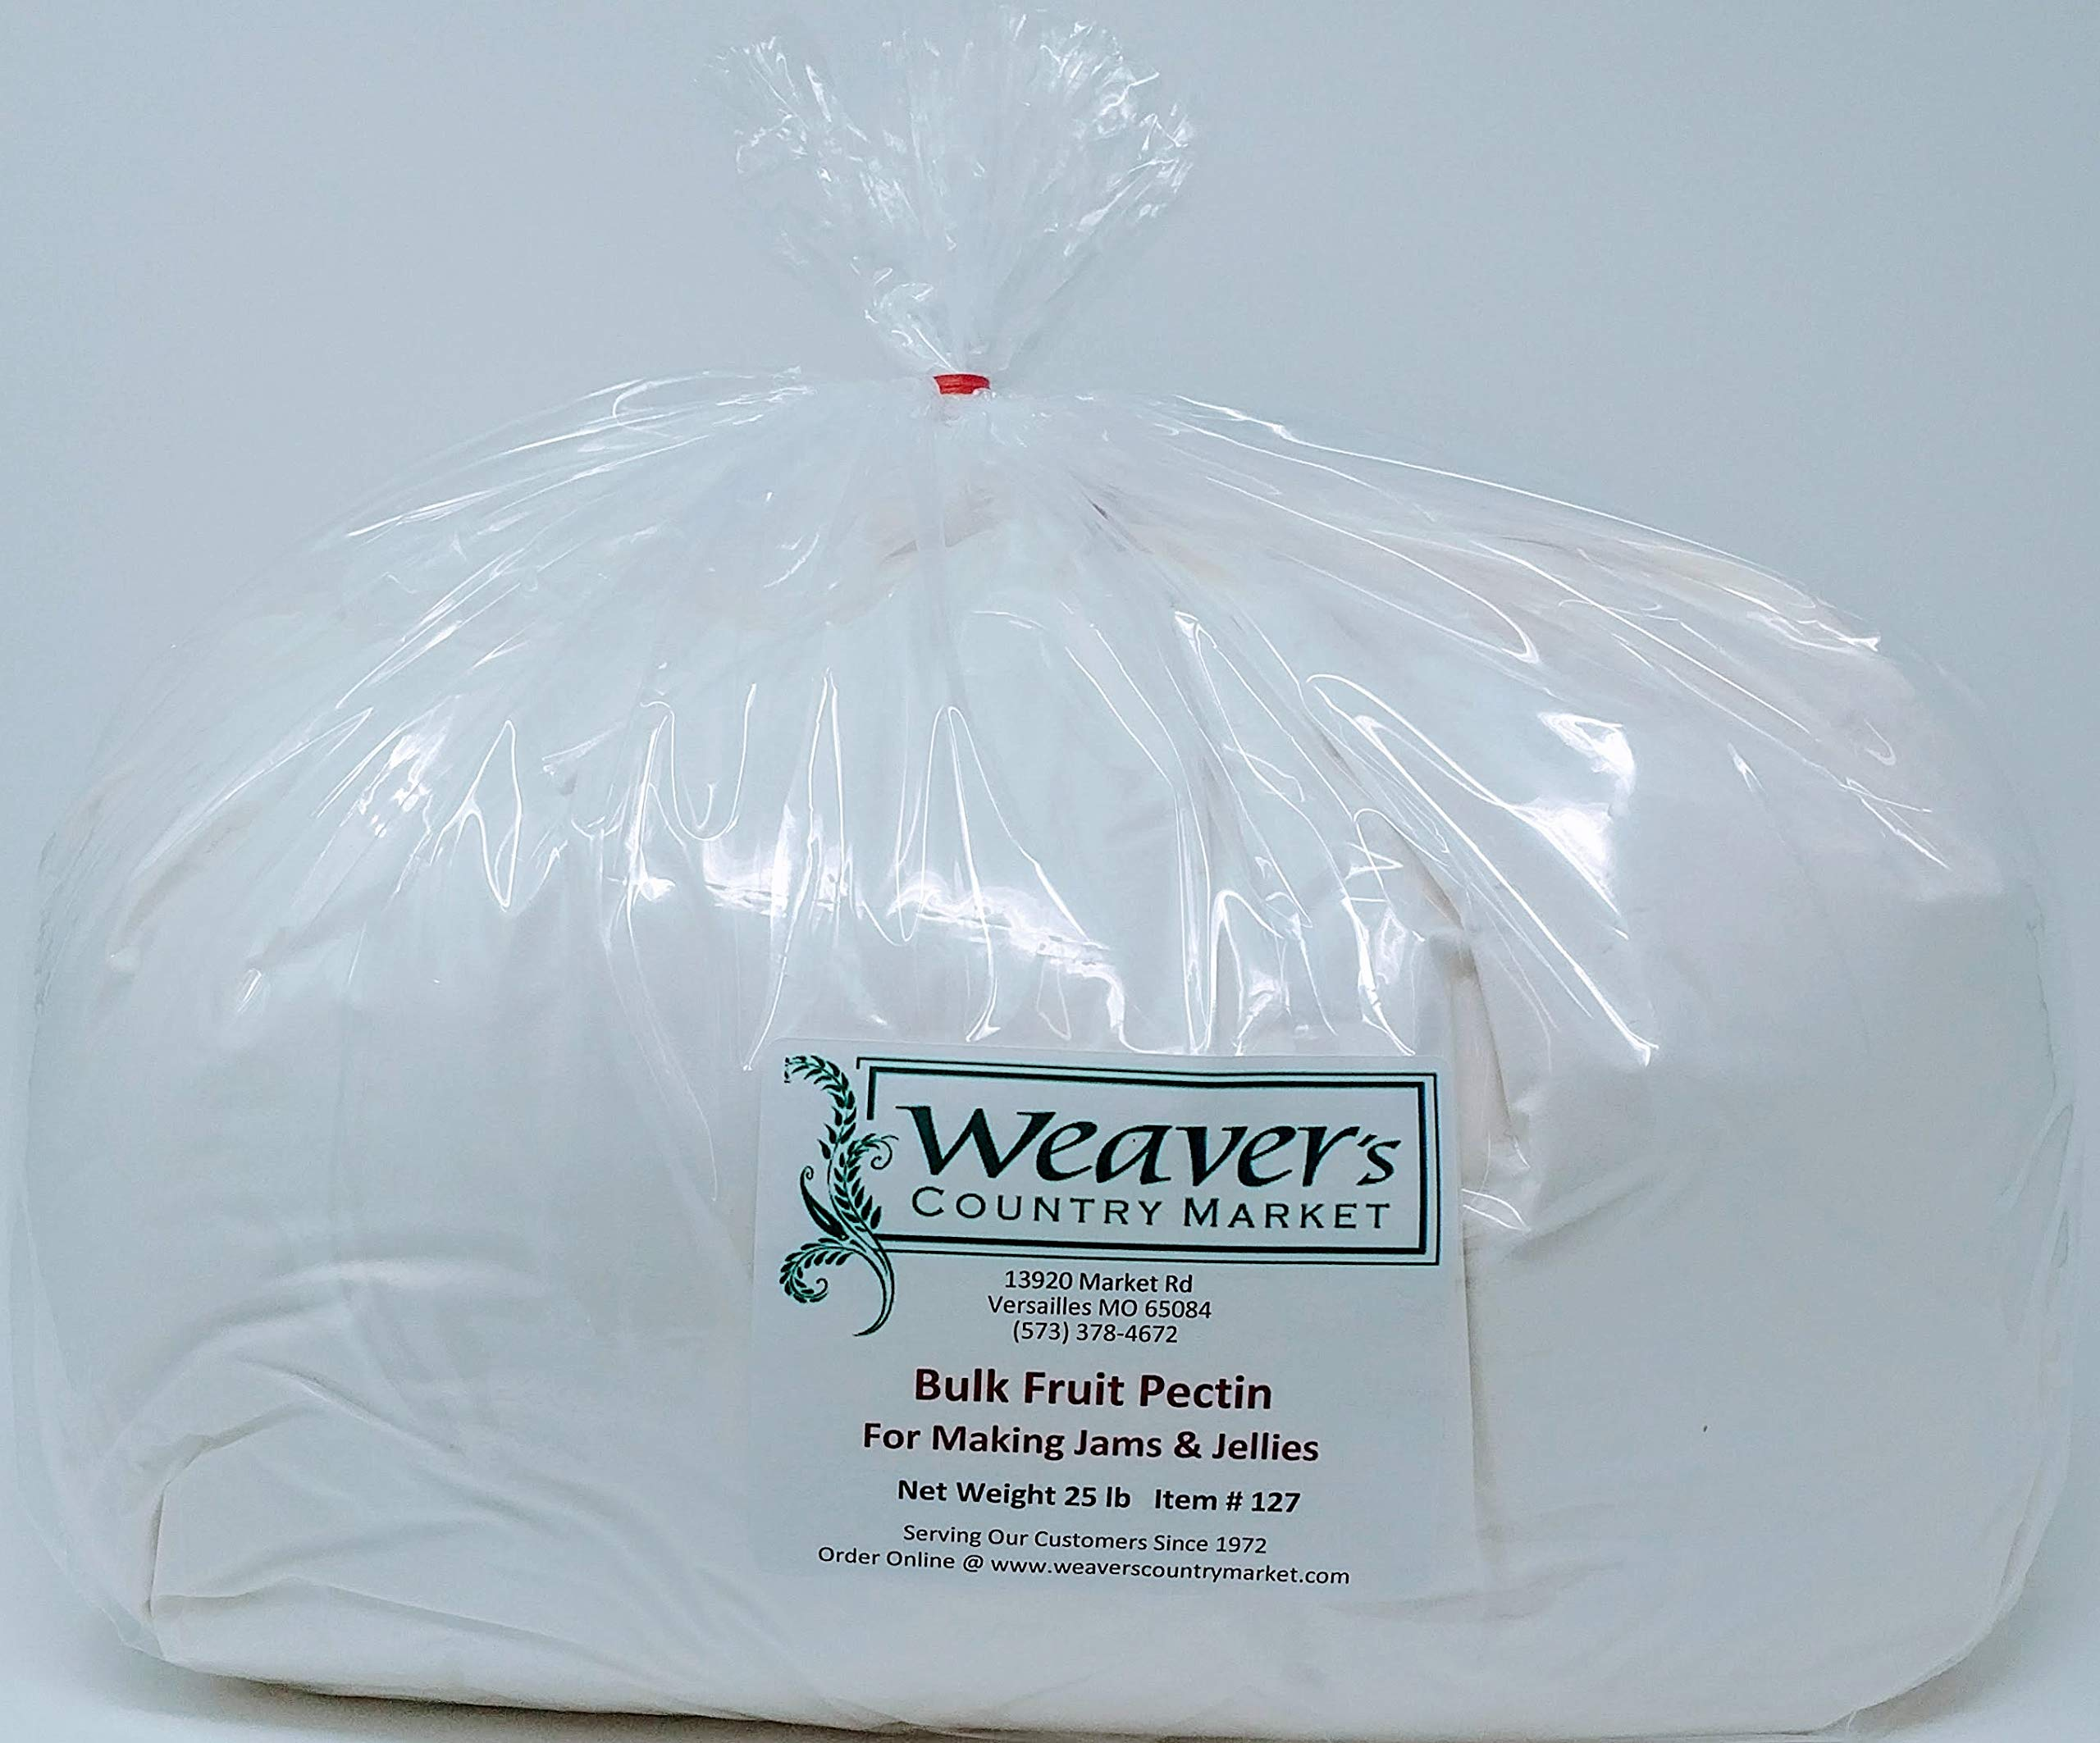 Weaver's Country Market Bulk Fruit Pectin Mix for Making Jams & Jellies (25 Pound Plastic Bag) by Weaver's Country Market (Image #1)